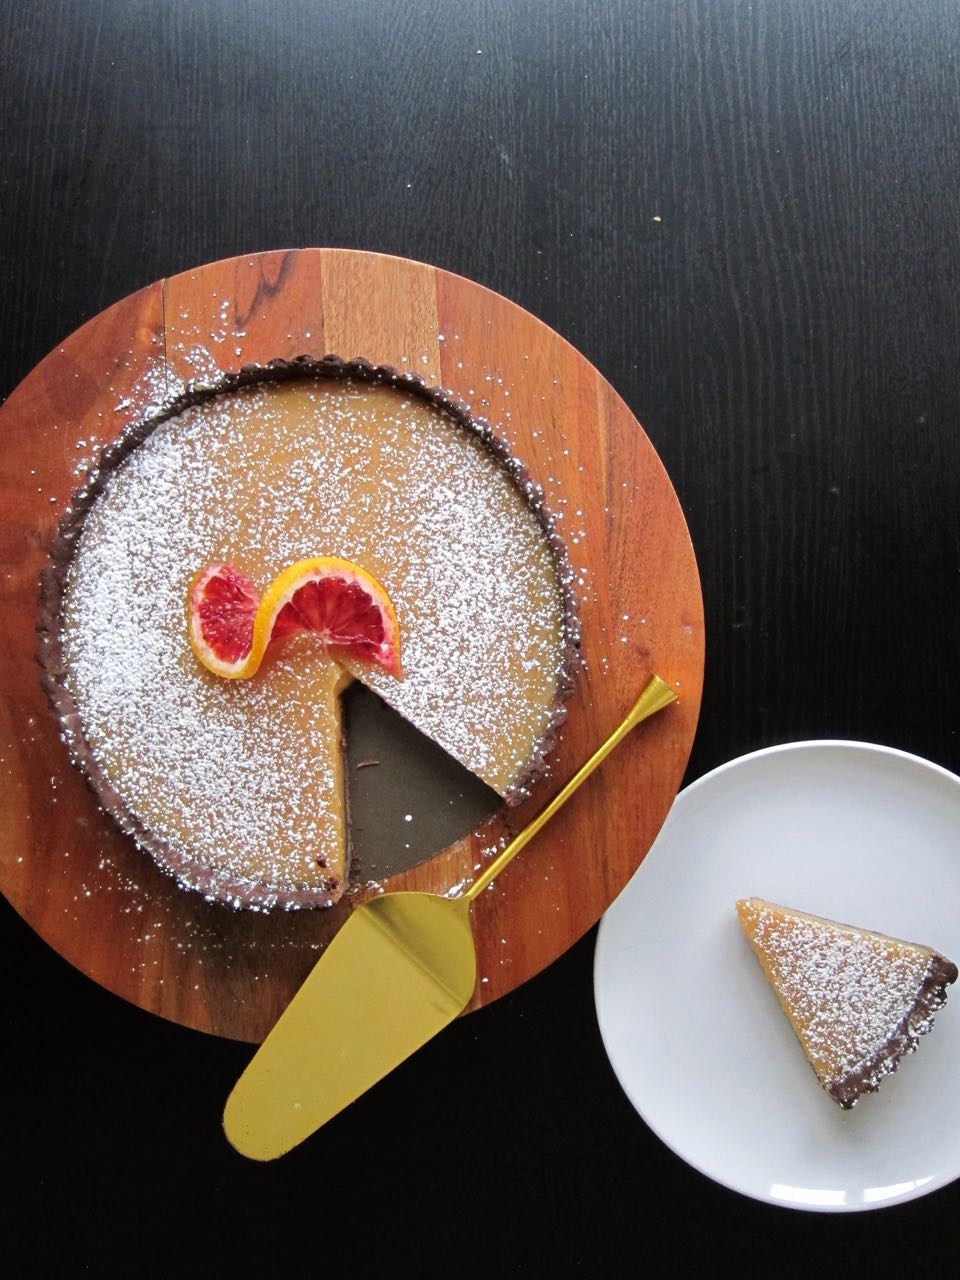 Sliced Chocolate Blood Orange Tart 1.jpg